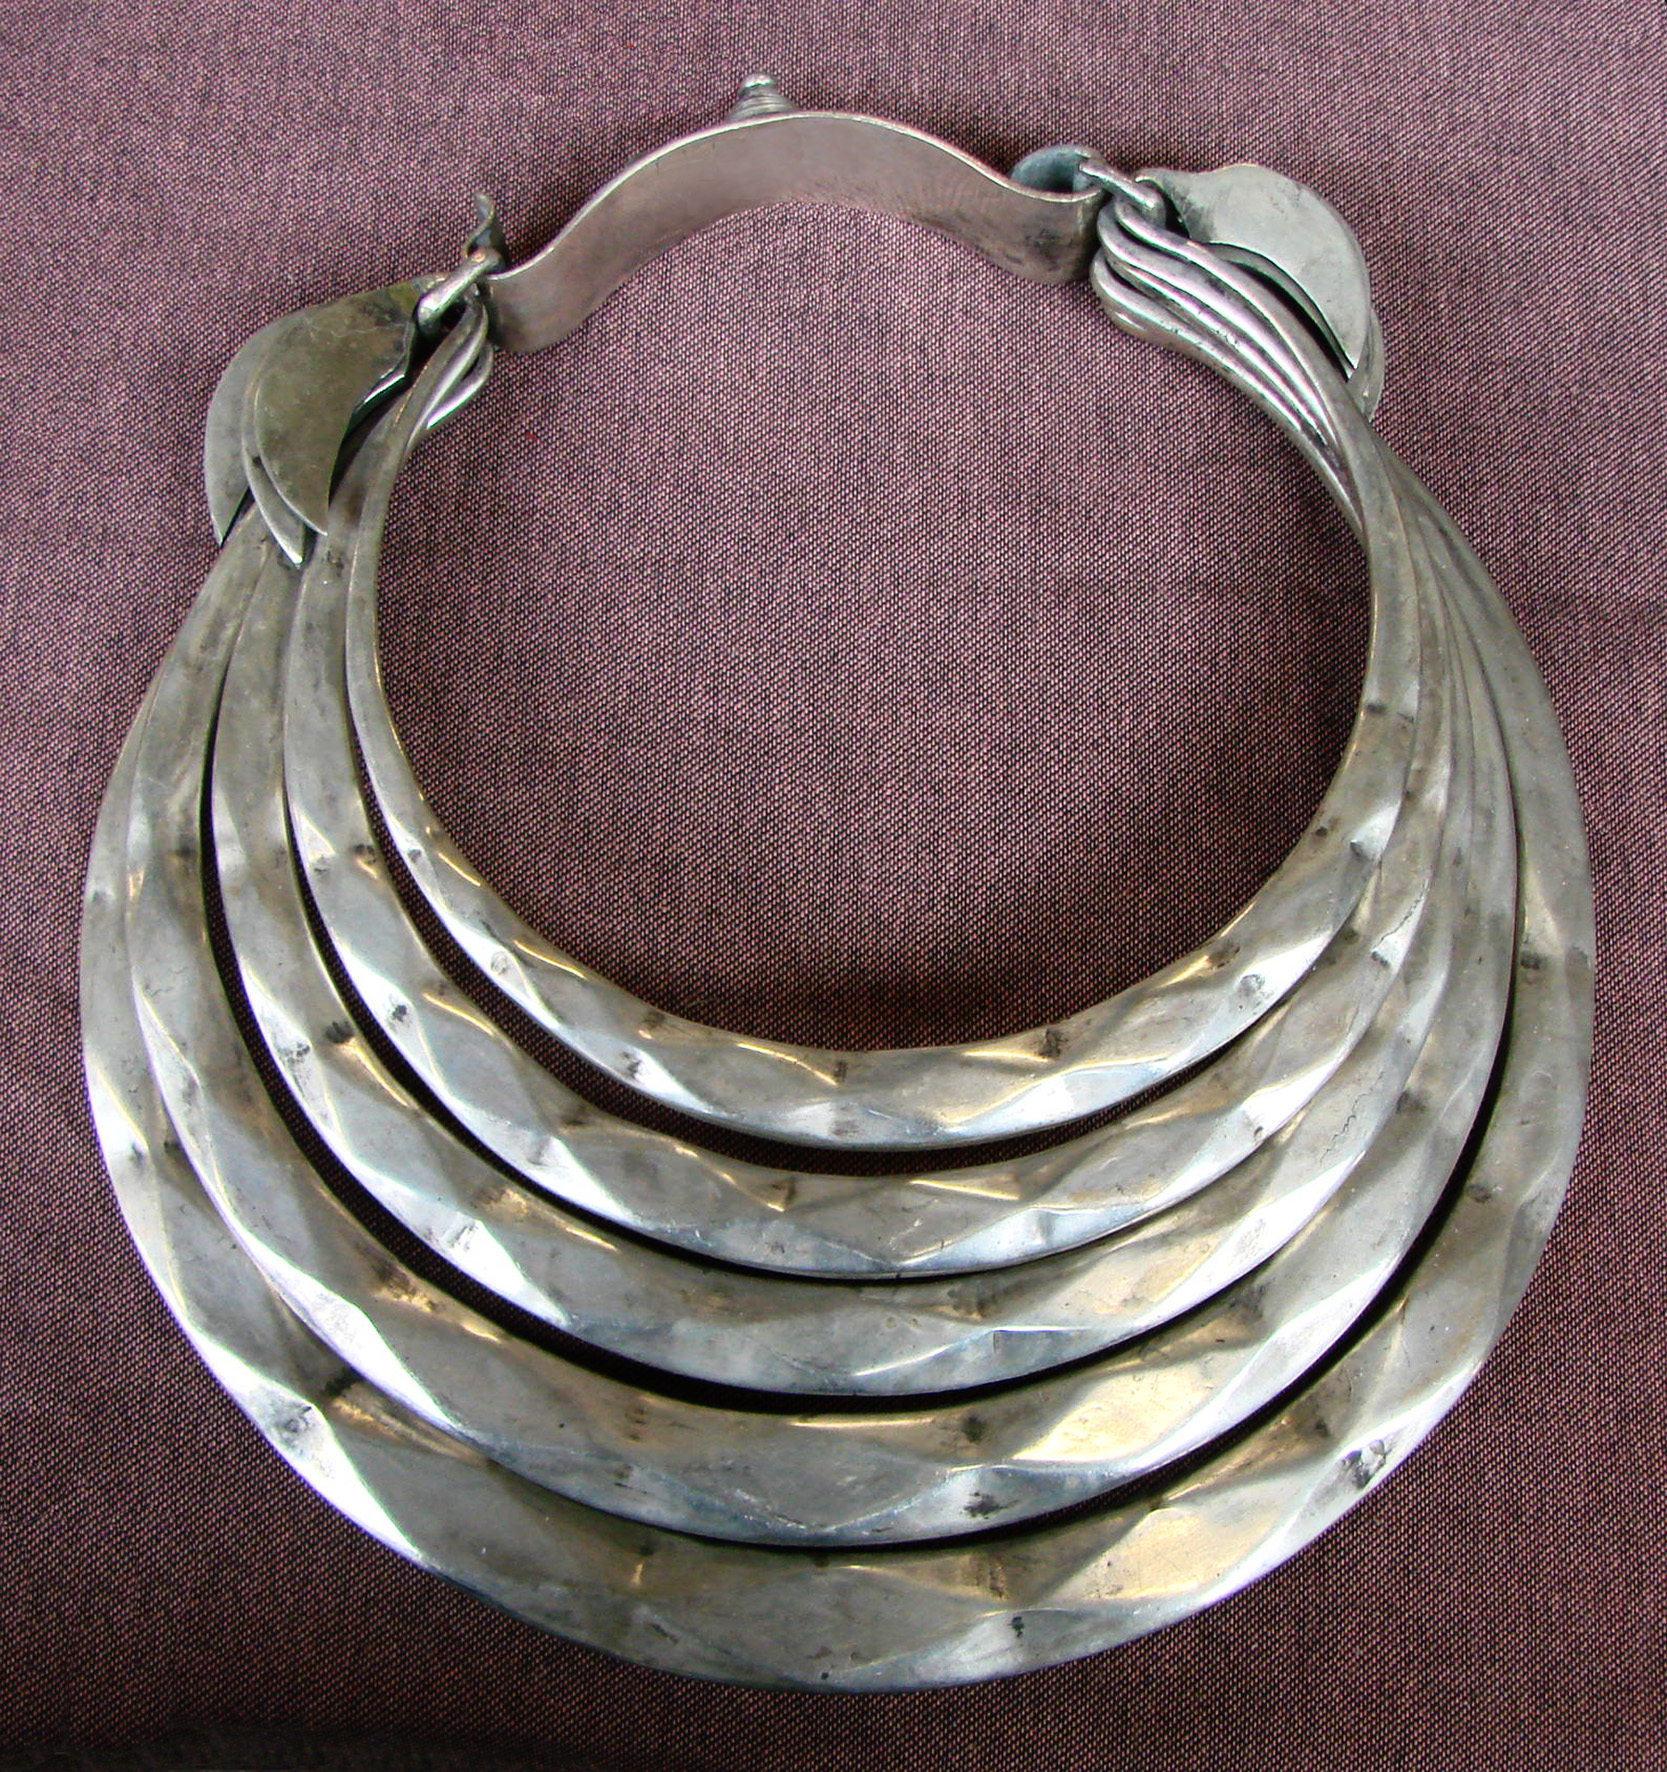 File:Collier Miao 06 jpg - Wikimedia Commons